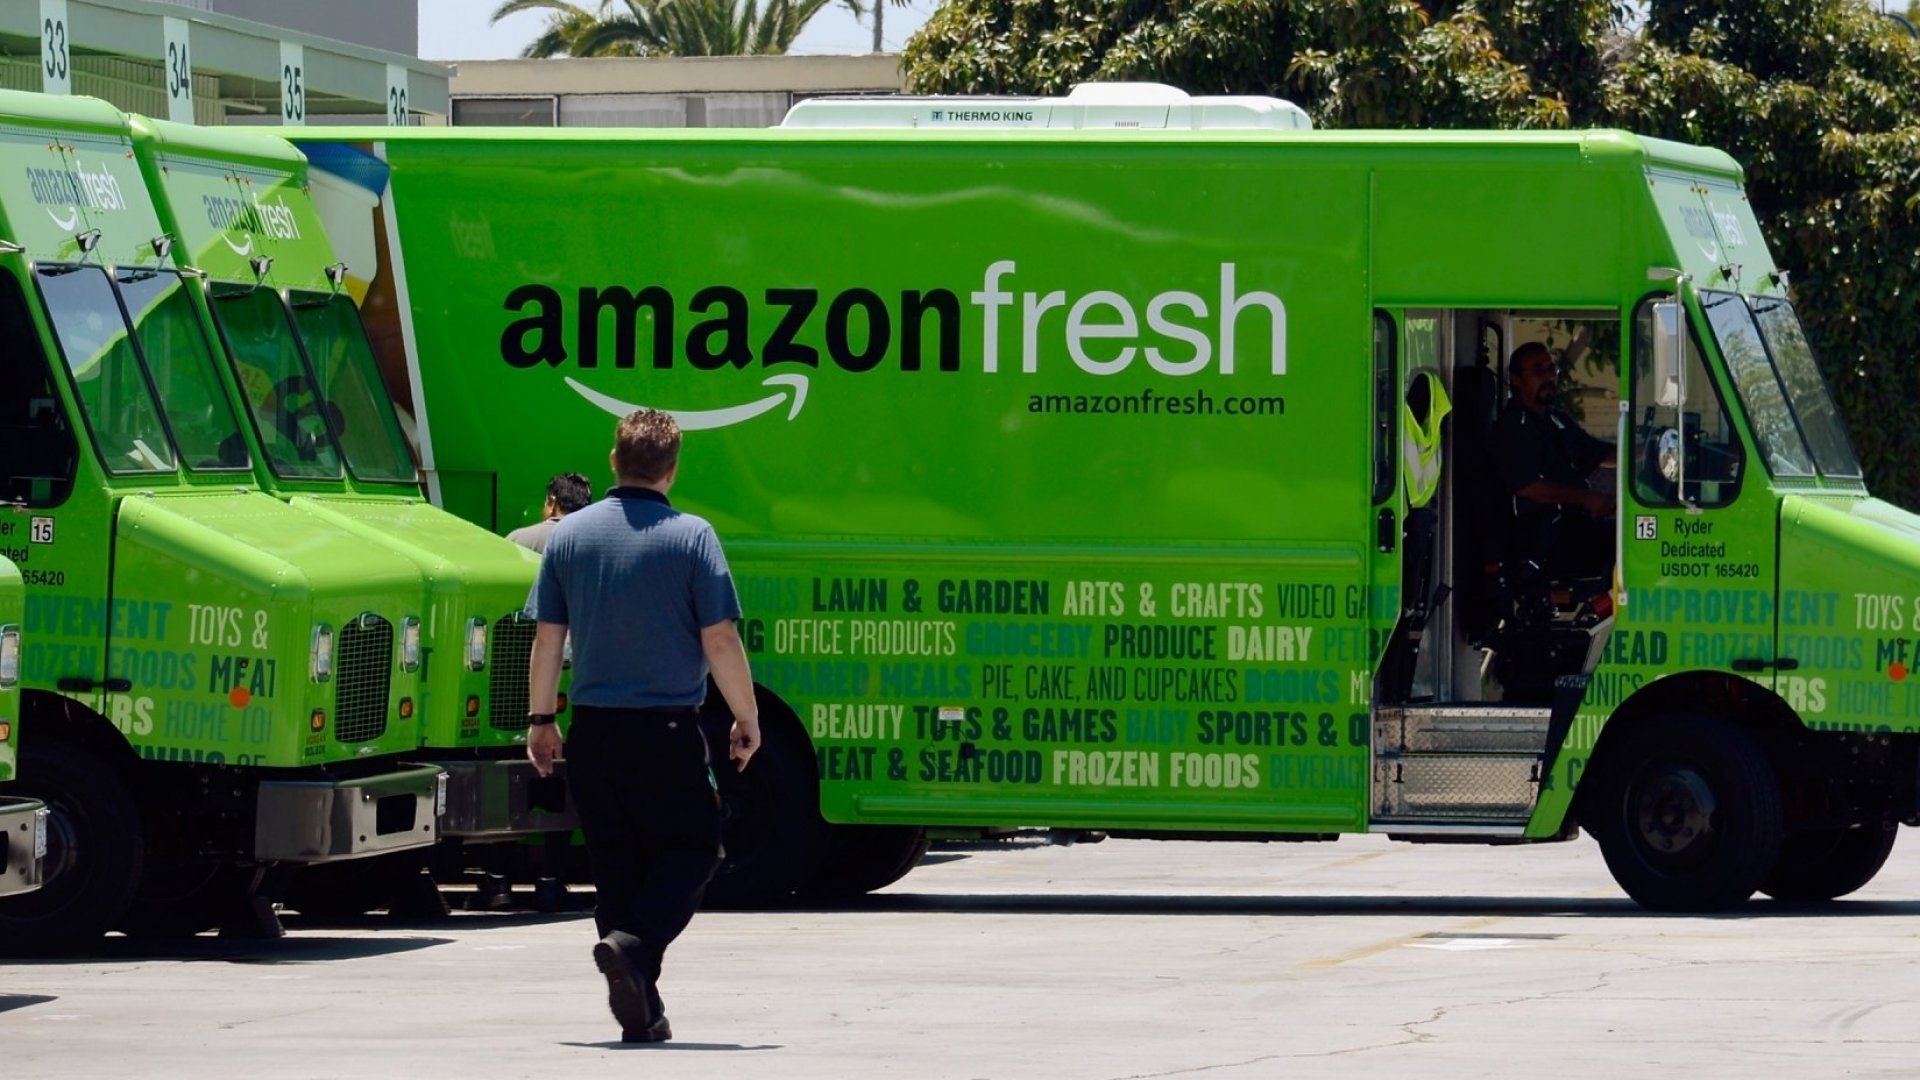 Amazon Fresh Meal Kits Launched Tuesday, and Some Have Sold Out